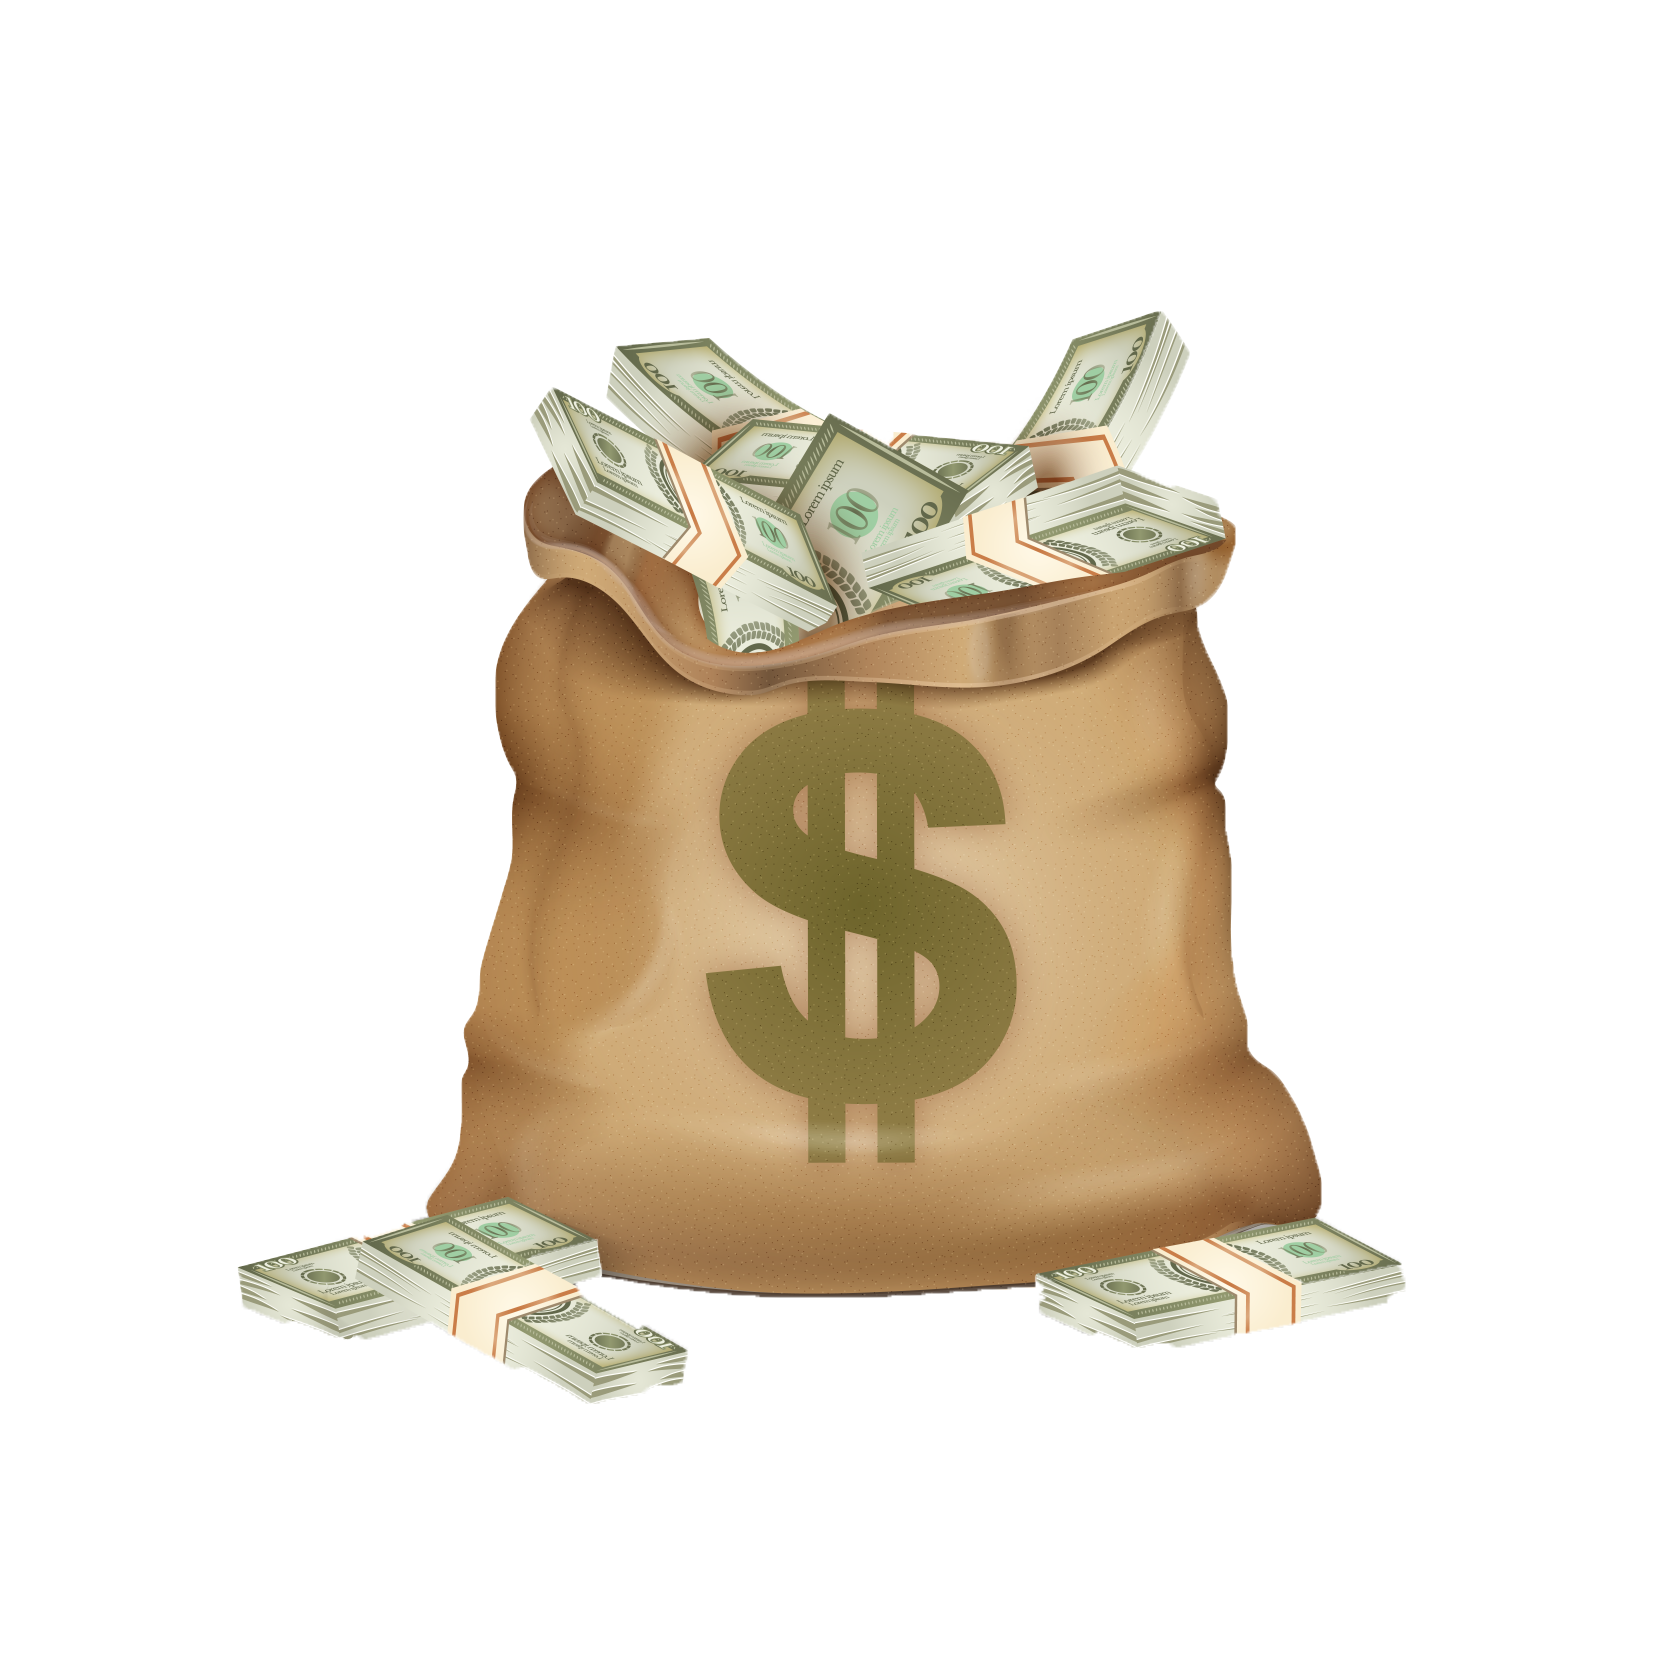 Bag of coins png. Money dollar sign coin